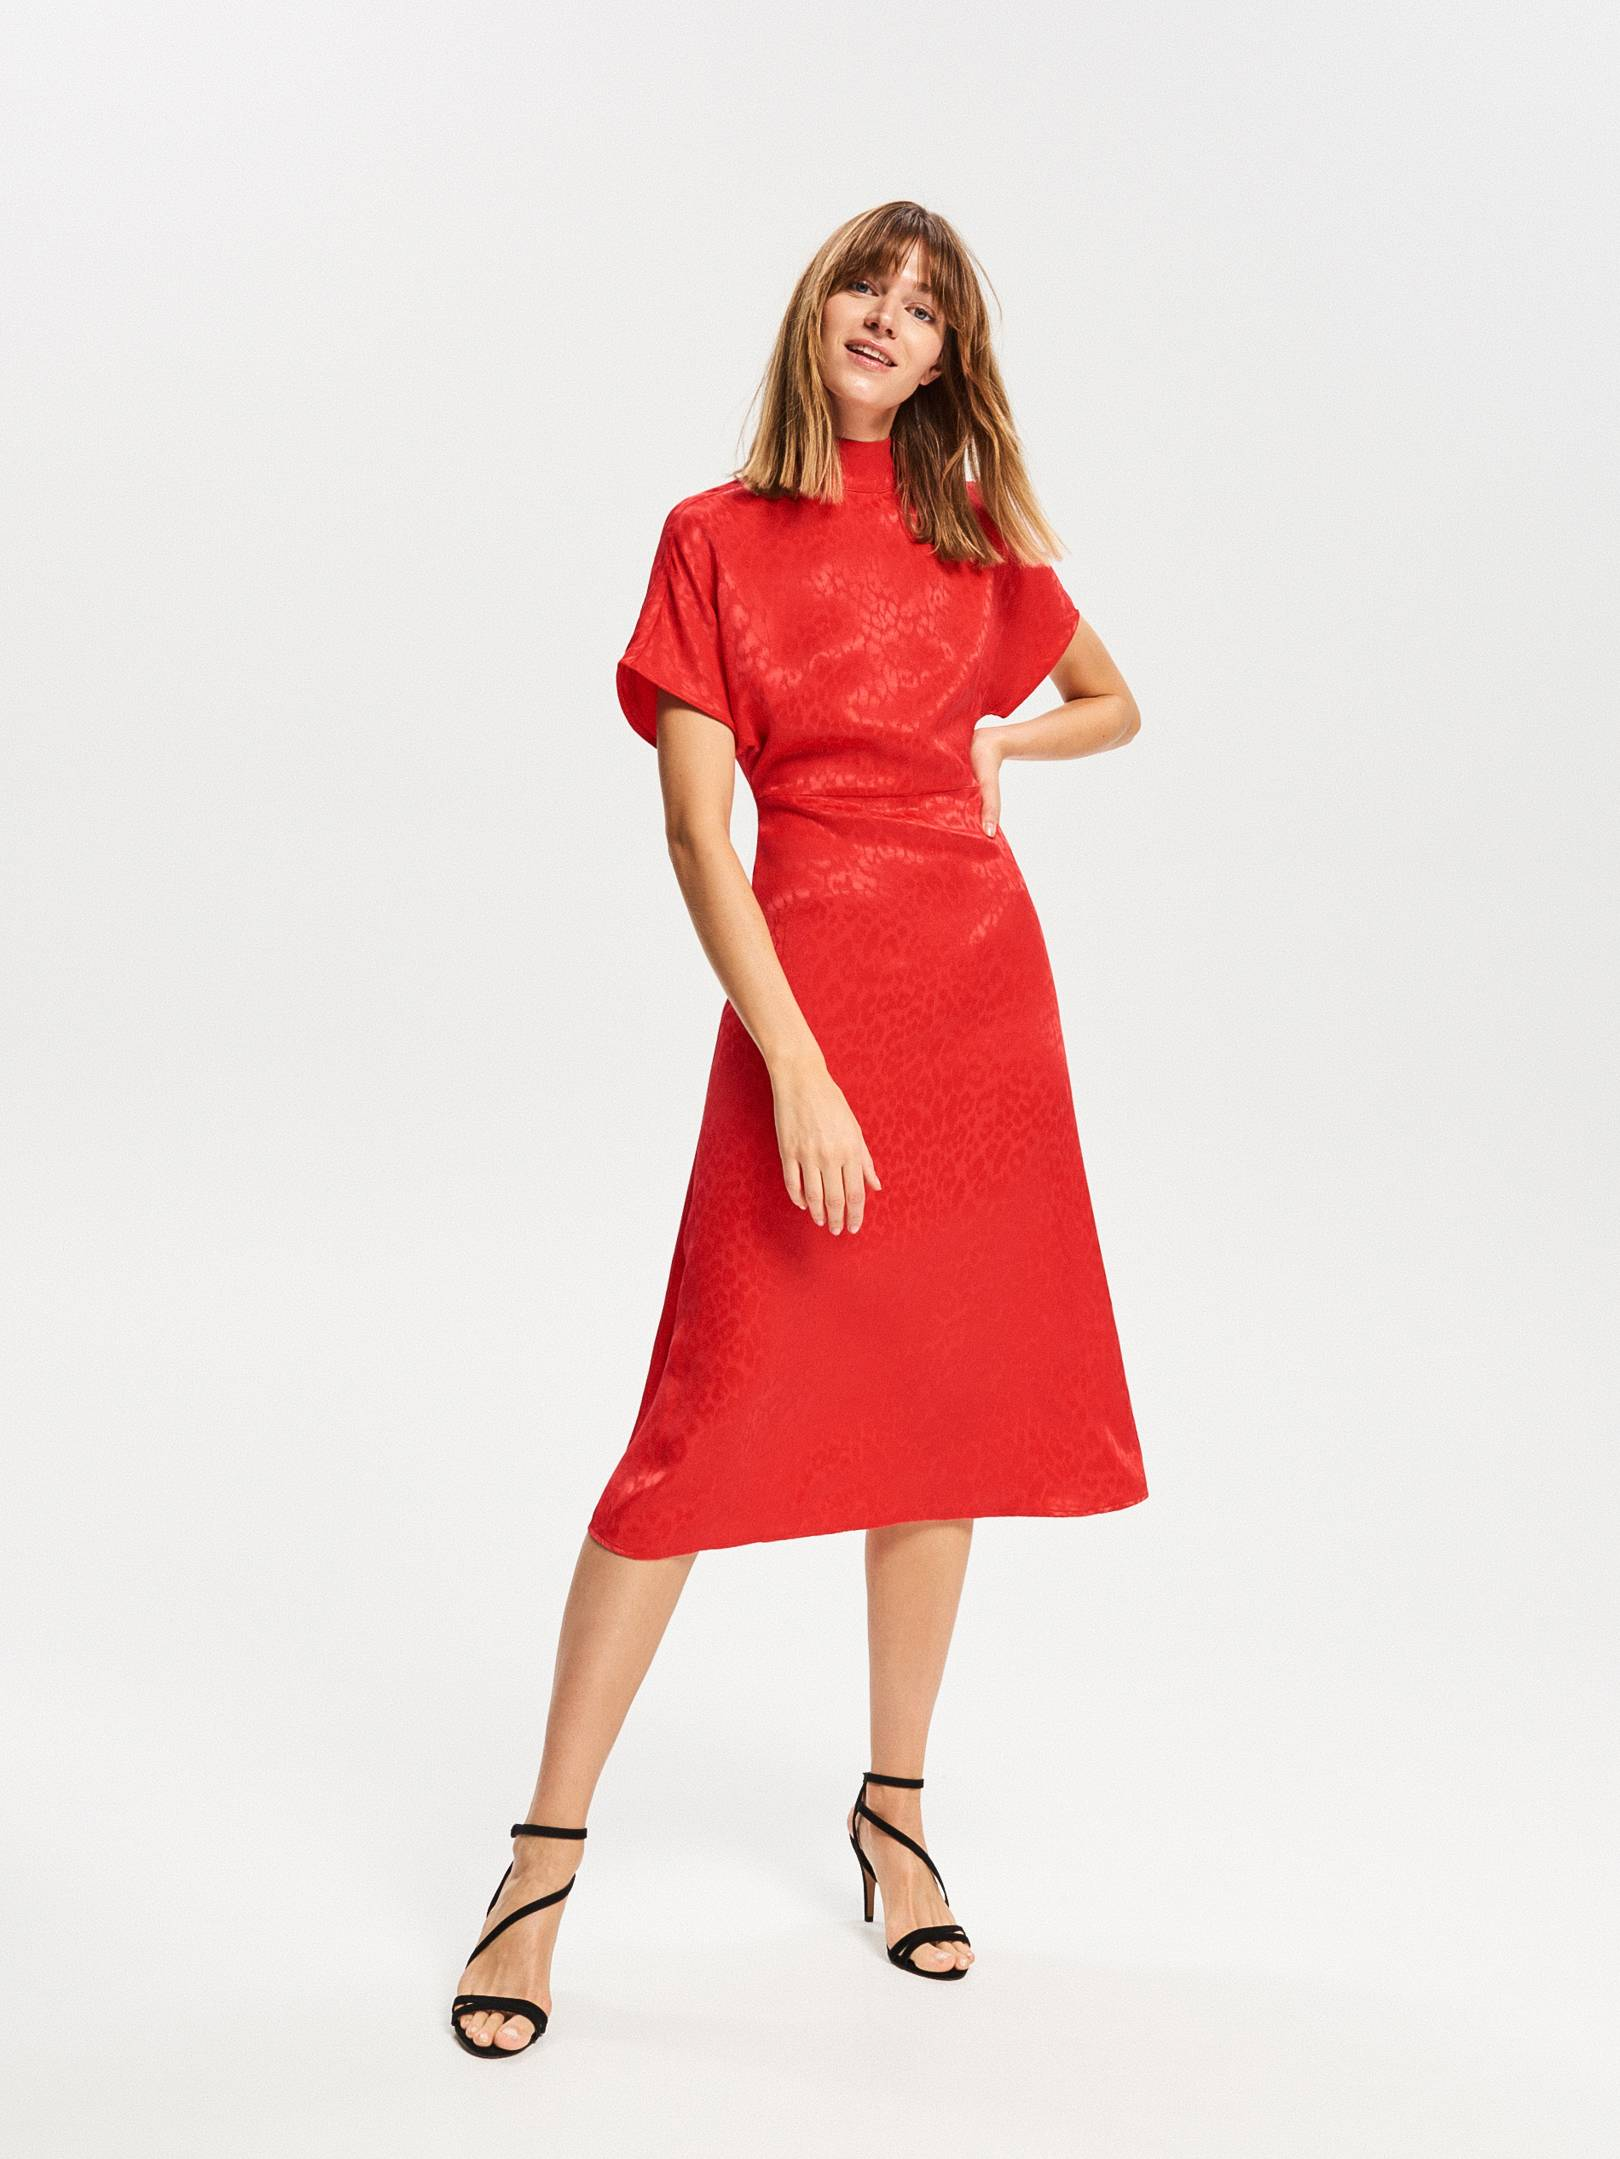 Winter Wedding Guest Dresses What To Wear To A Wedding In 2019